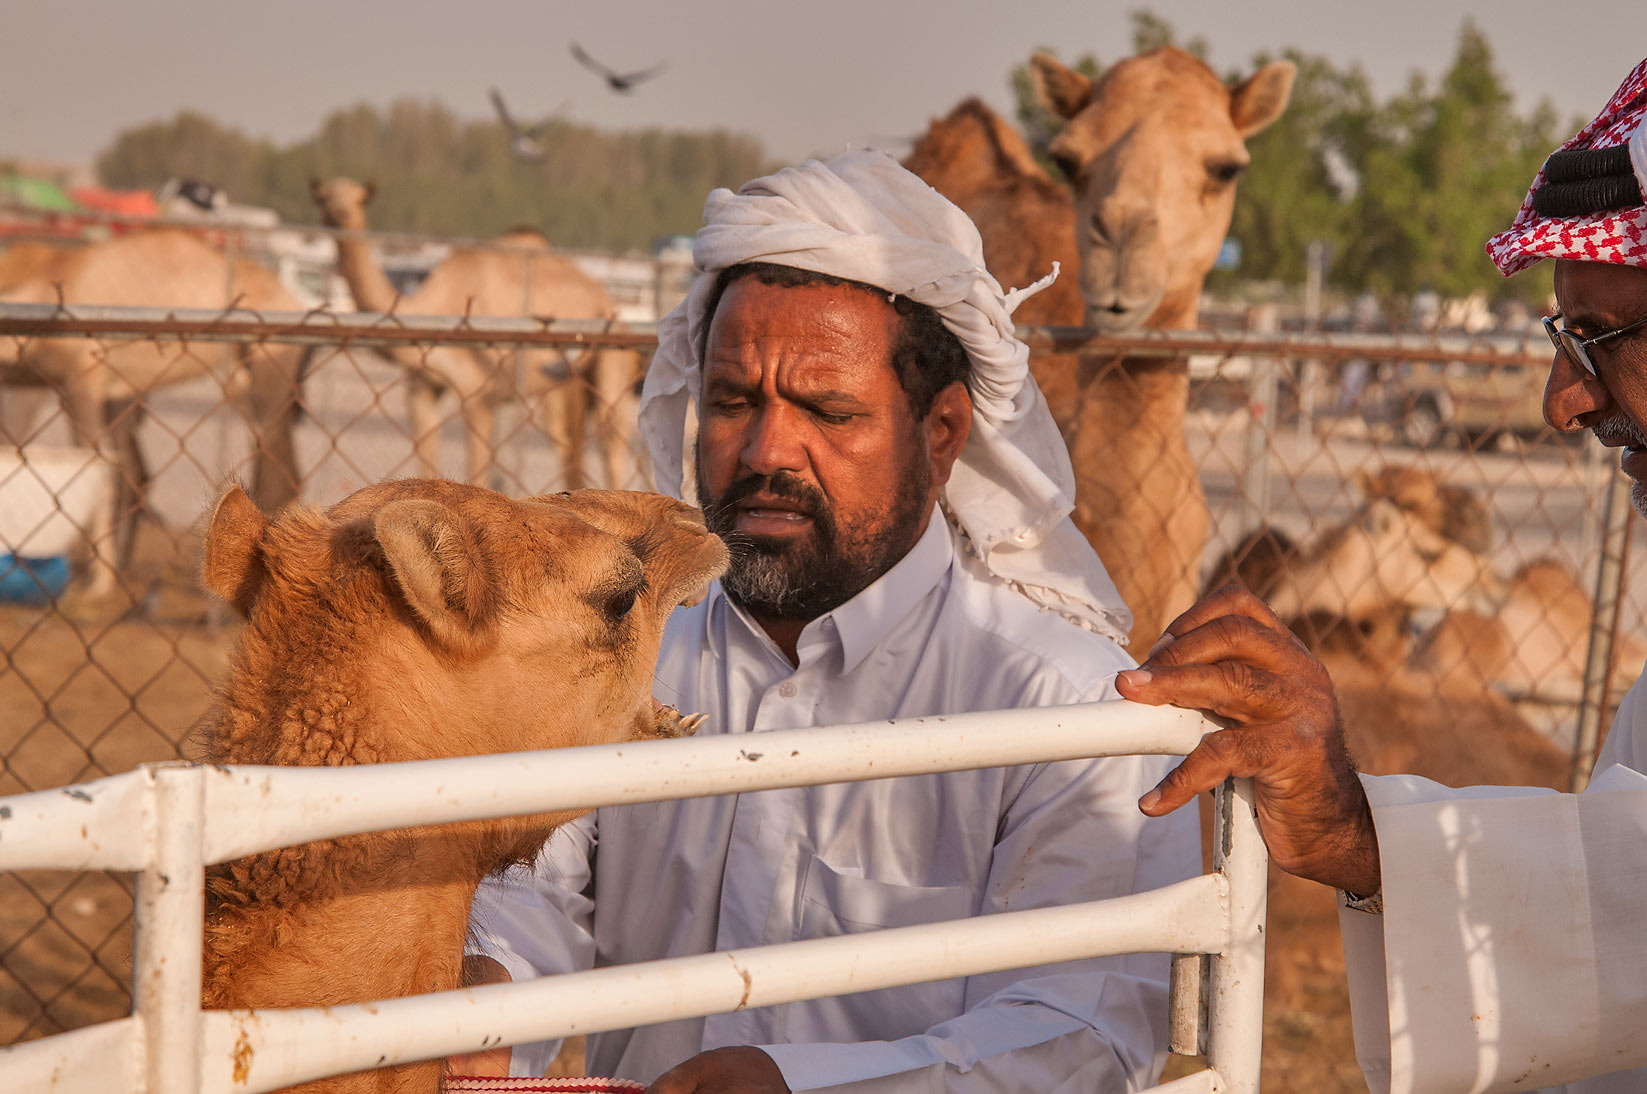 Consolation of a crying camel on a truck in Livestock Market, Abu Hamour area. Doha, Qatar